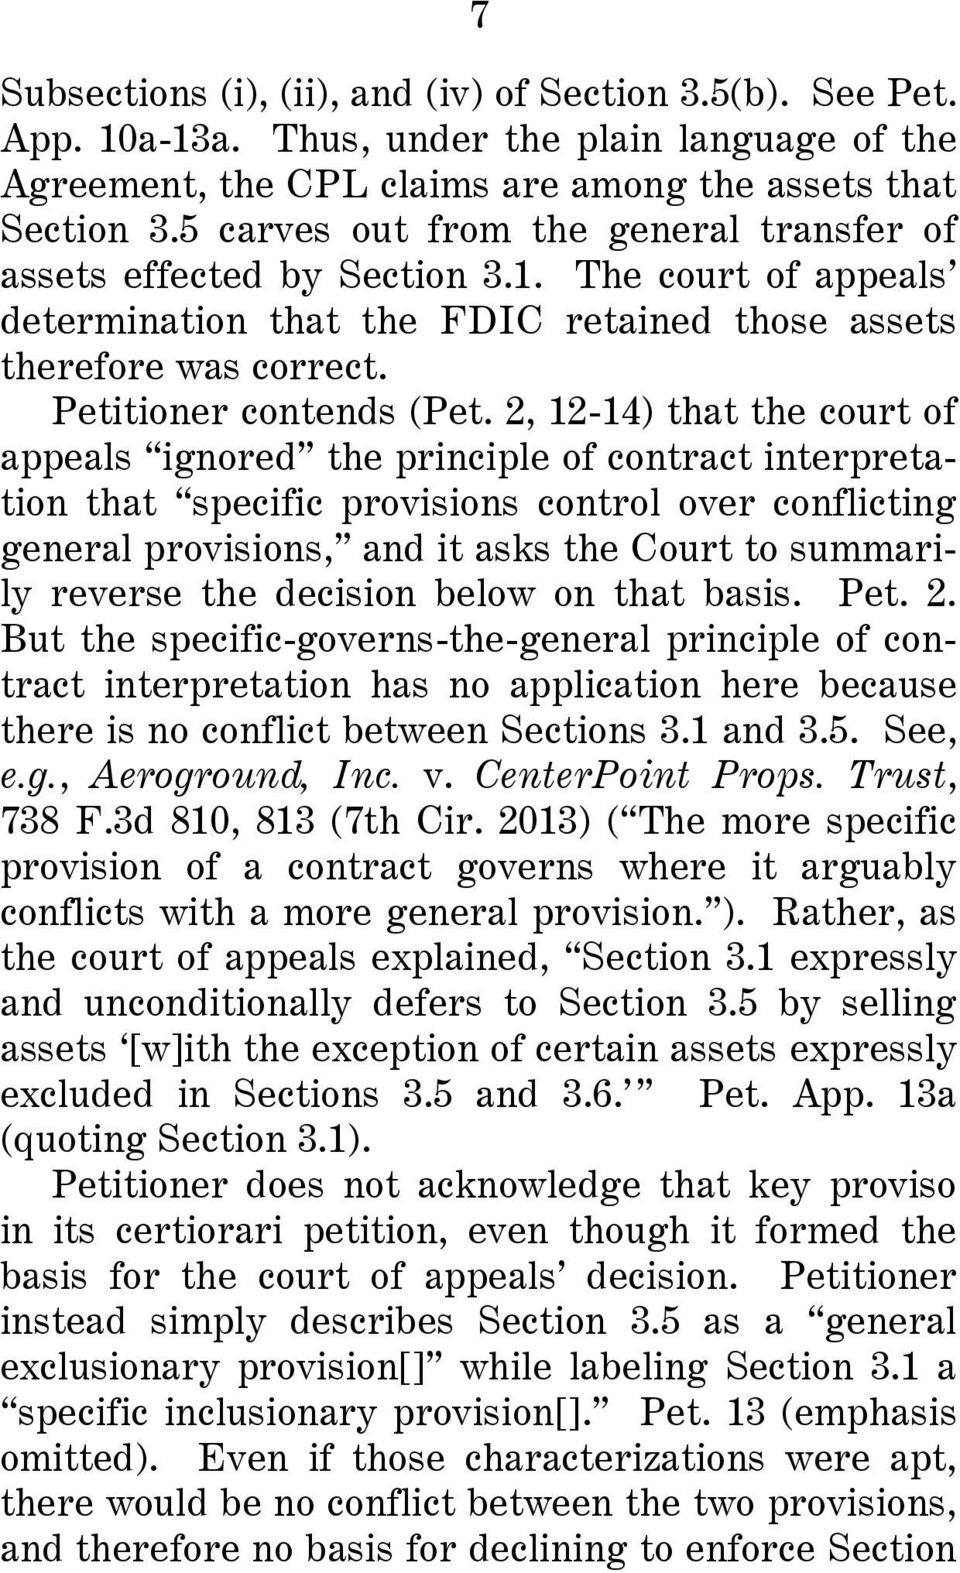 2, 12-14) that the court of appeals ignored the principle of contract interpretation that specific provisions control over conflicting general provisions, and it asks the Court to summarily reverse